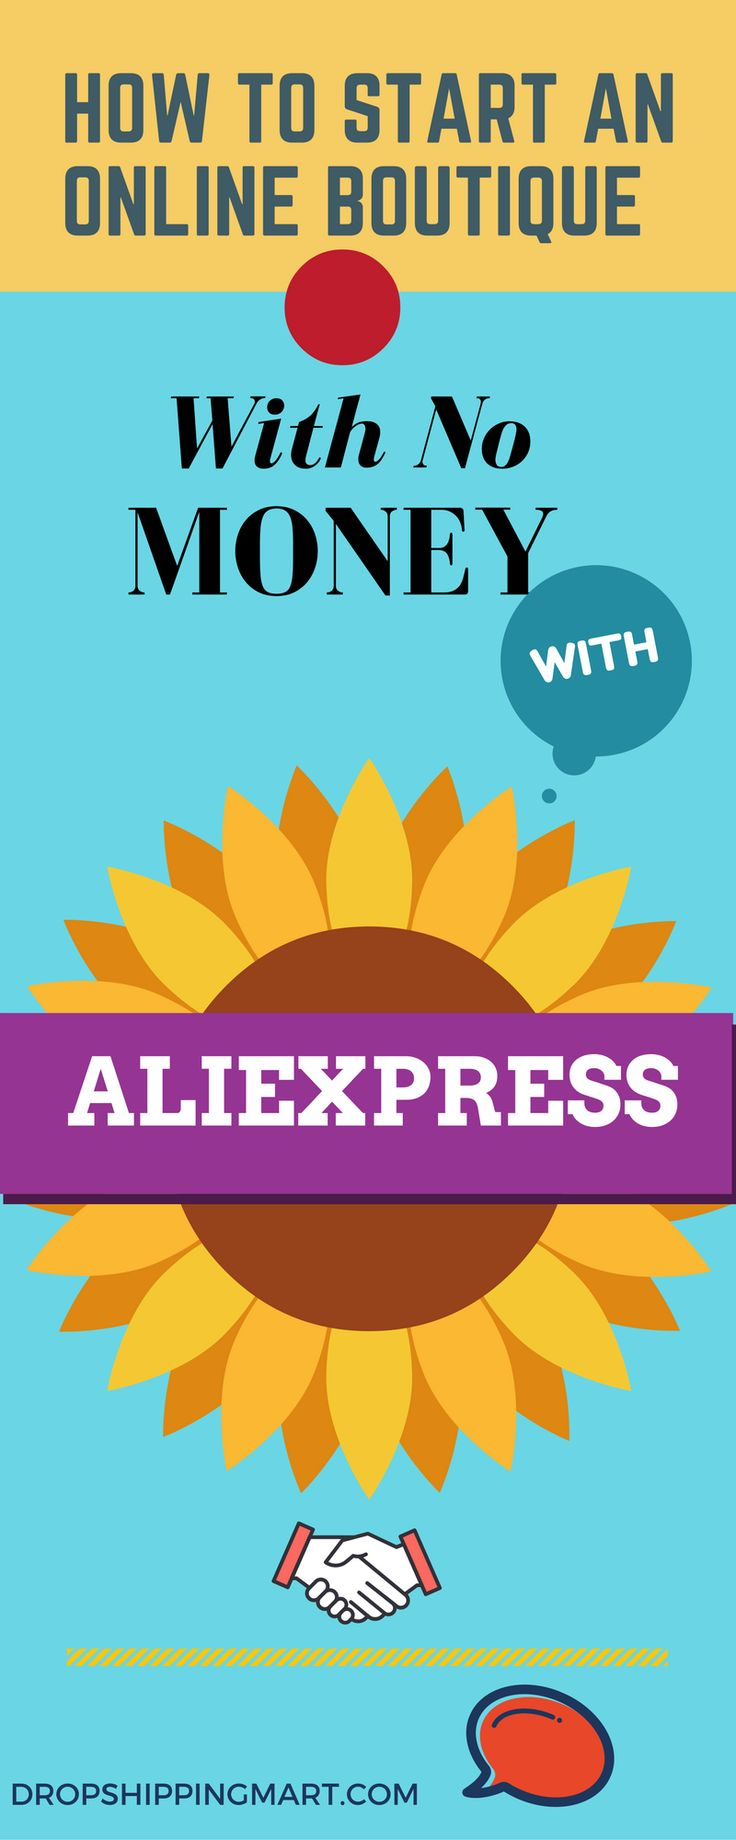 To start  a #onlineboutique with aliexpress you don't need money upfront  The options for starting a #dropshipping company .No Warehousing, No Upfront payment to wholesalers.. Handpicked suppliers who will work in pay as you go basis, so you only pay when you are paid by your customer. Hence almost zero capital required to start.#onlineboutique #onlinestore #onlineshop